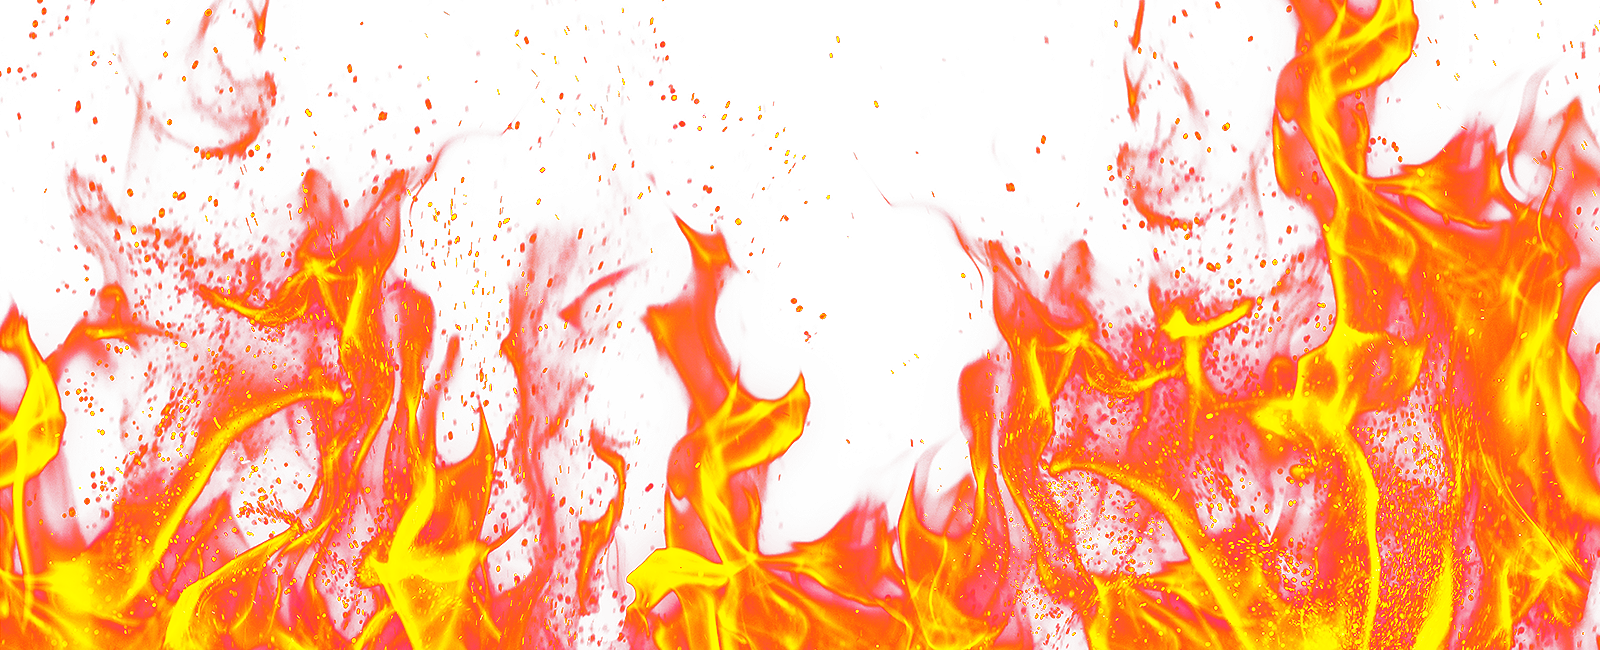 uploads flame flame PNG13242 25